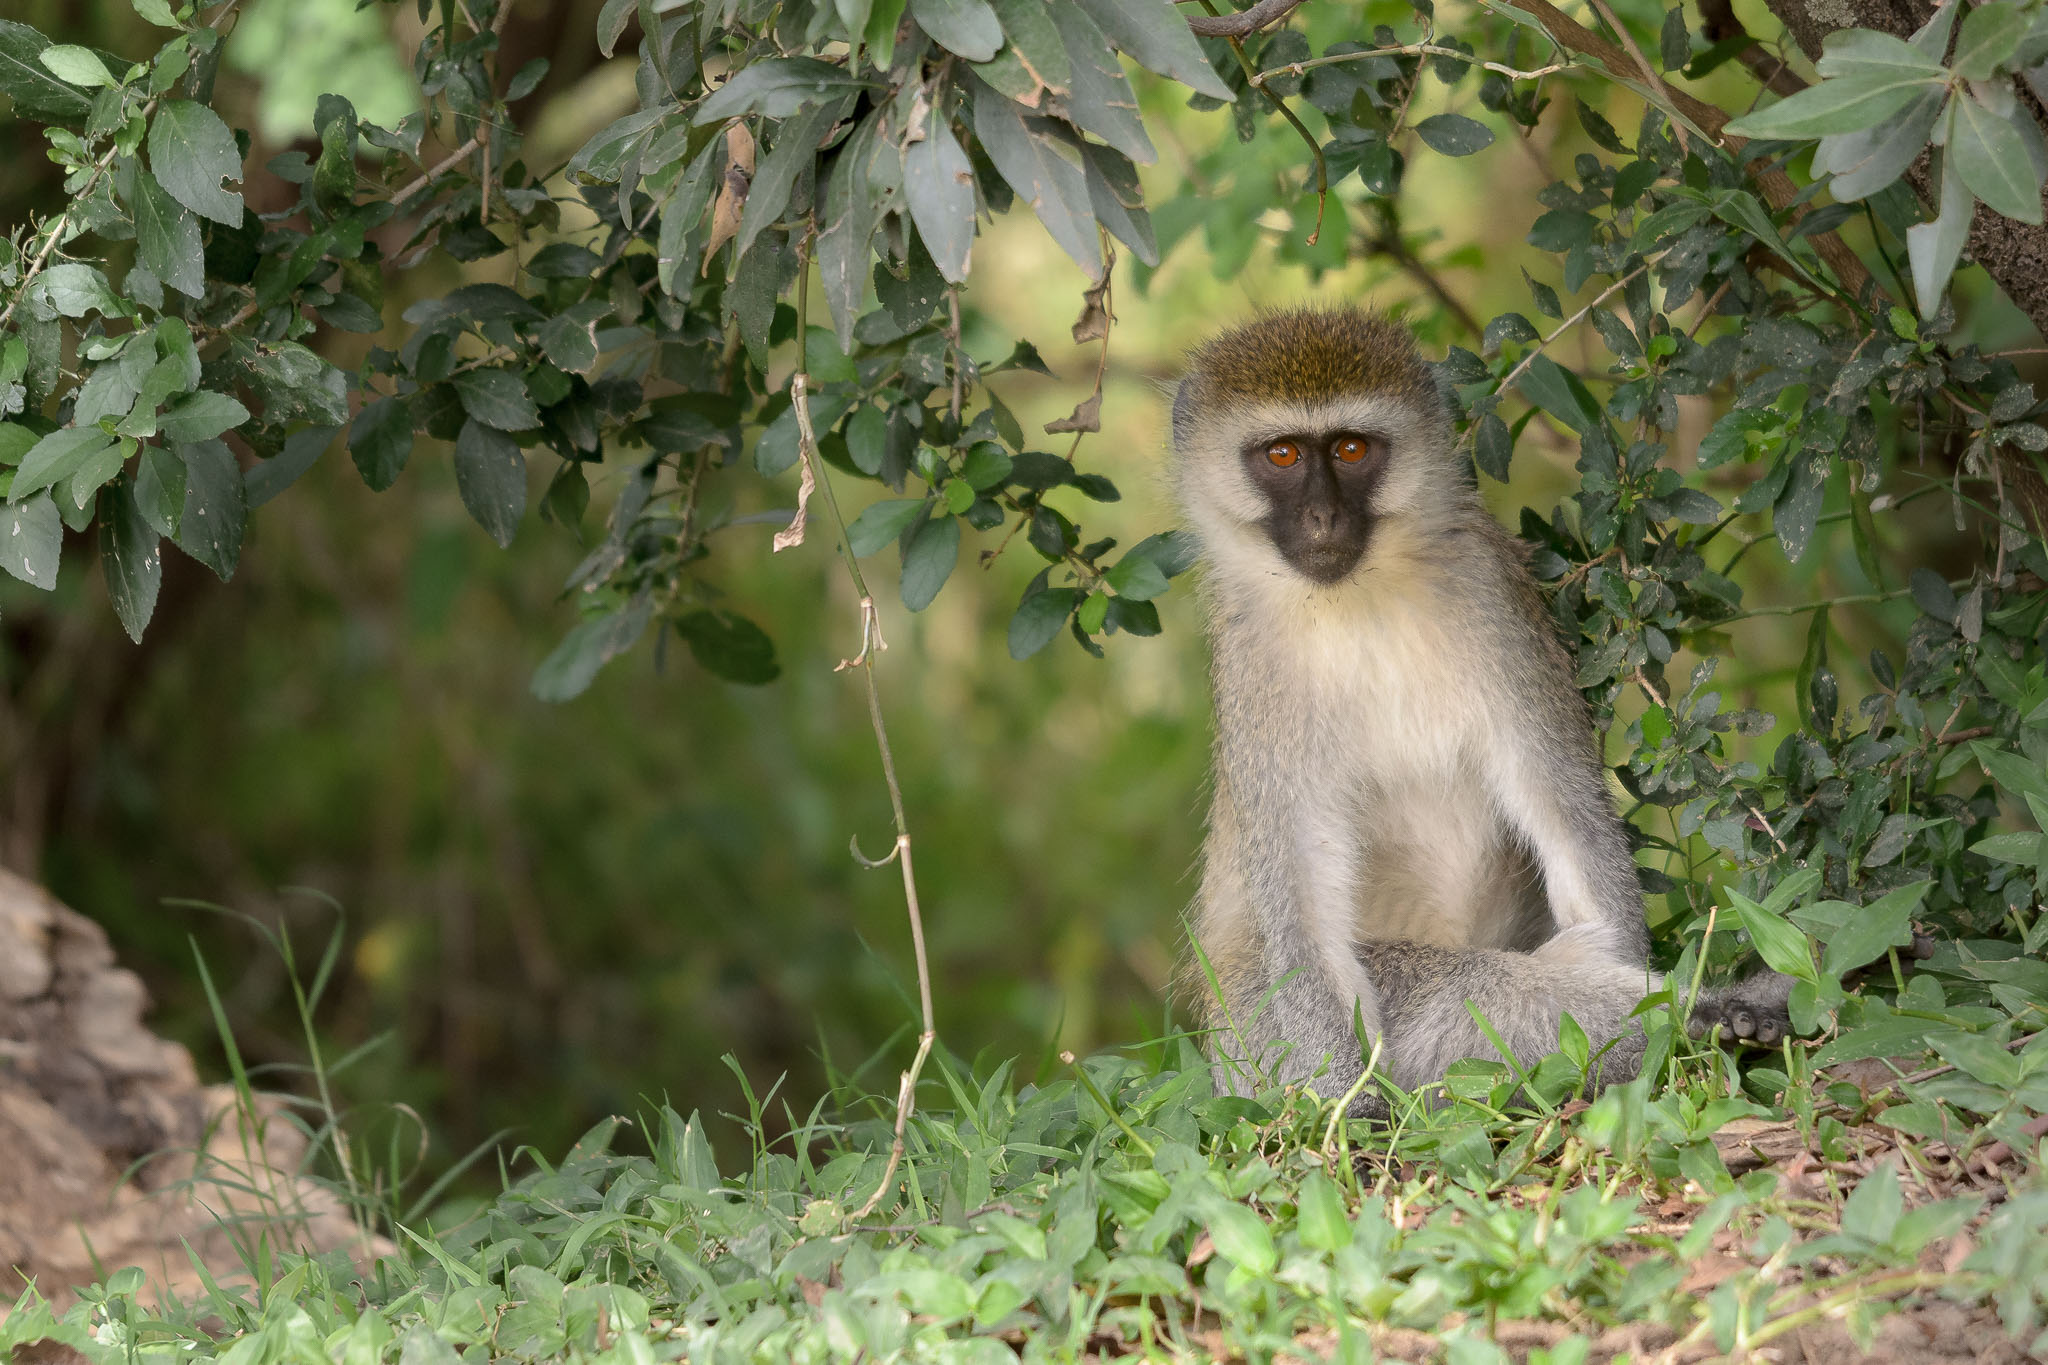 This vervet hung around our camp and was willing to sit and pose quite a lot. He also tried to steel our fruit as well, so wasn't always perfectly behaved.